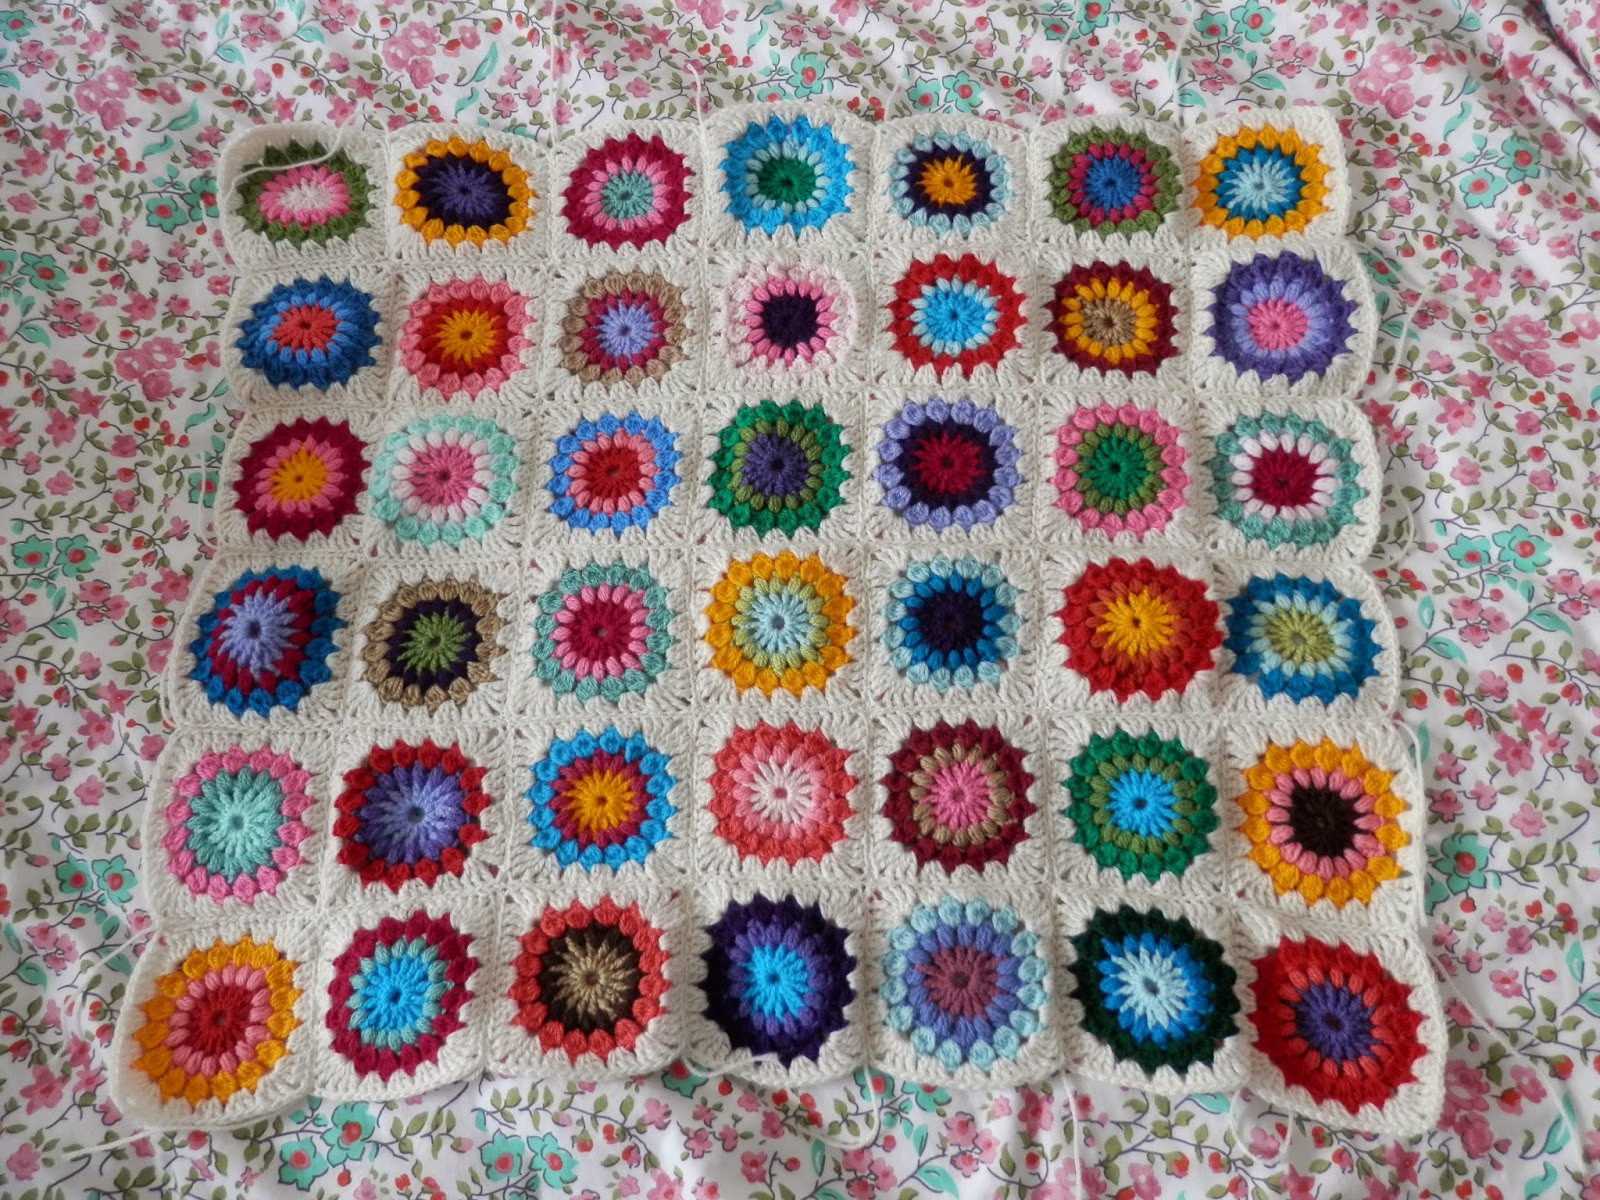 Crochet Granny Square Blanket Pattern Luxury Second Hand Susie Current Crochet Projects Mollie Makes Of Brilliant 48 Ideas Crochet Granny Square Blanket Pattern